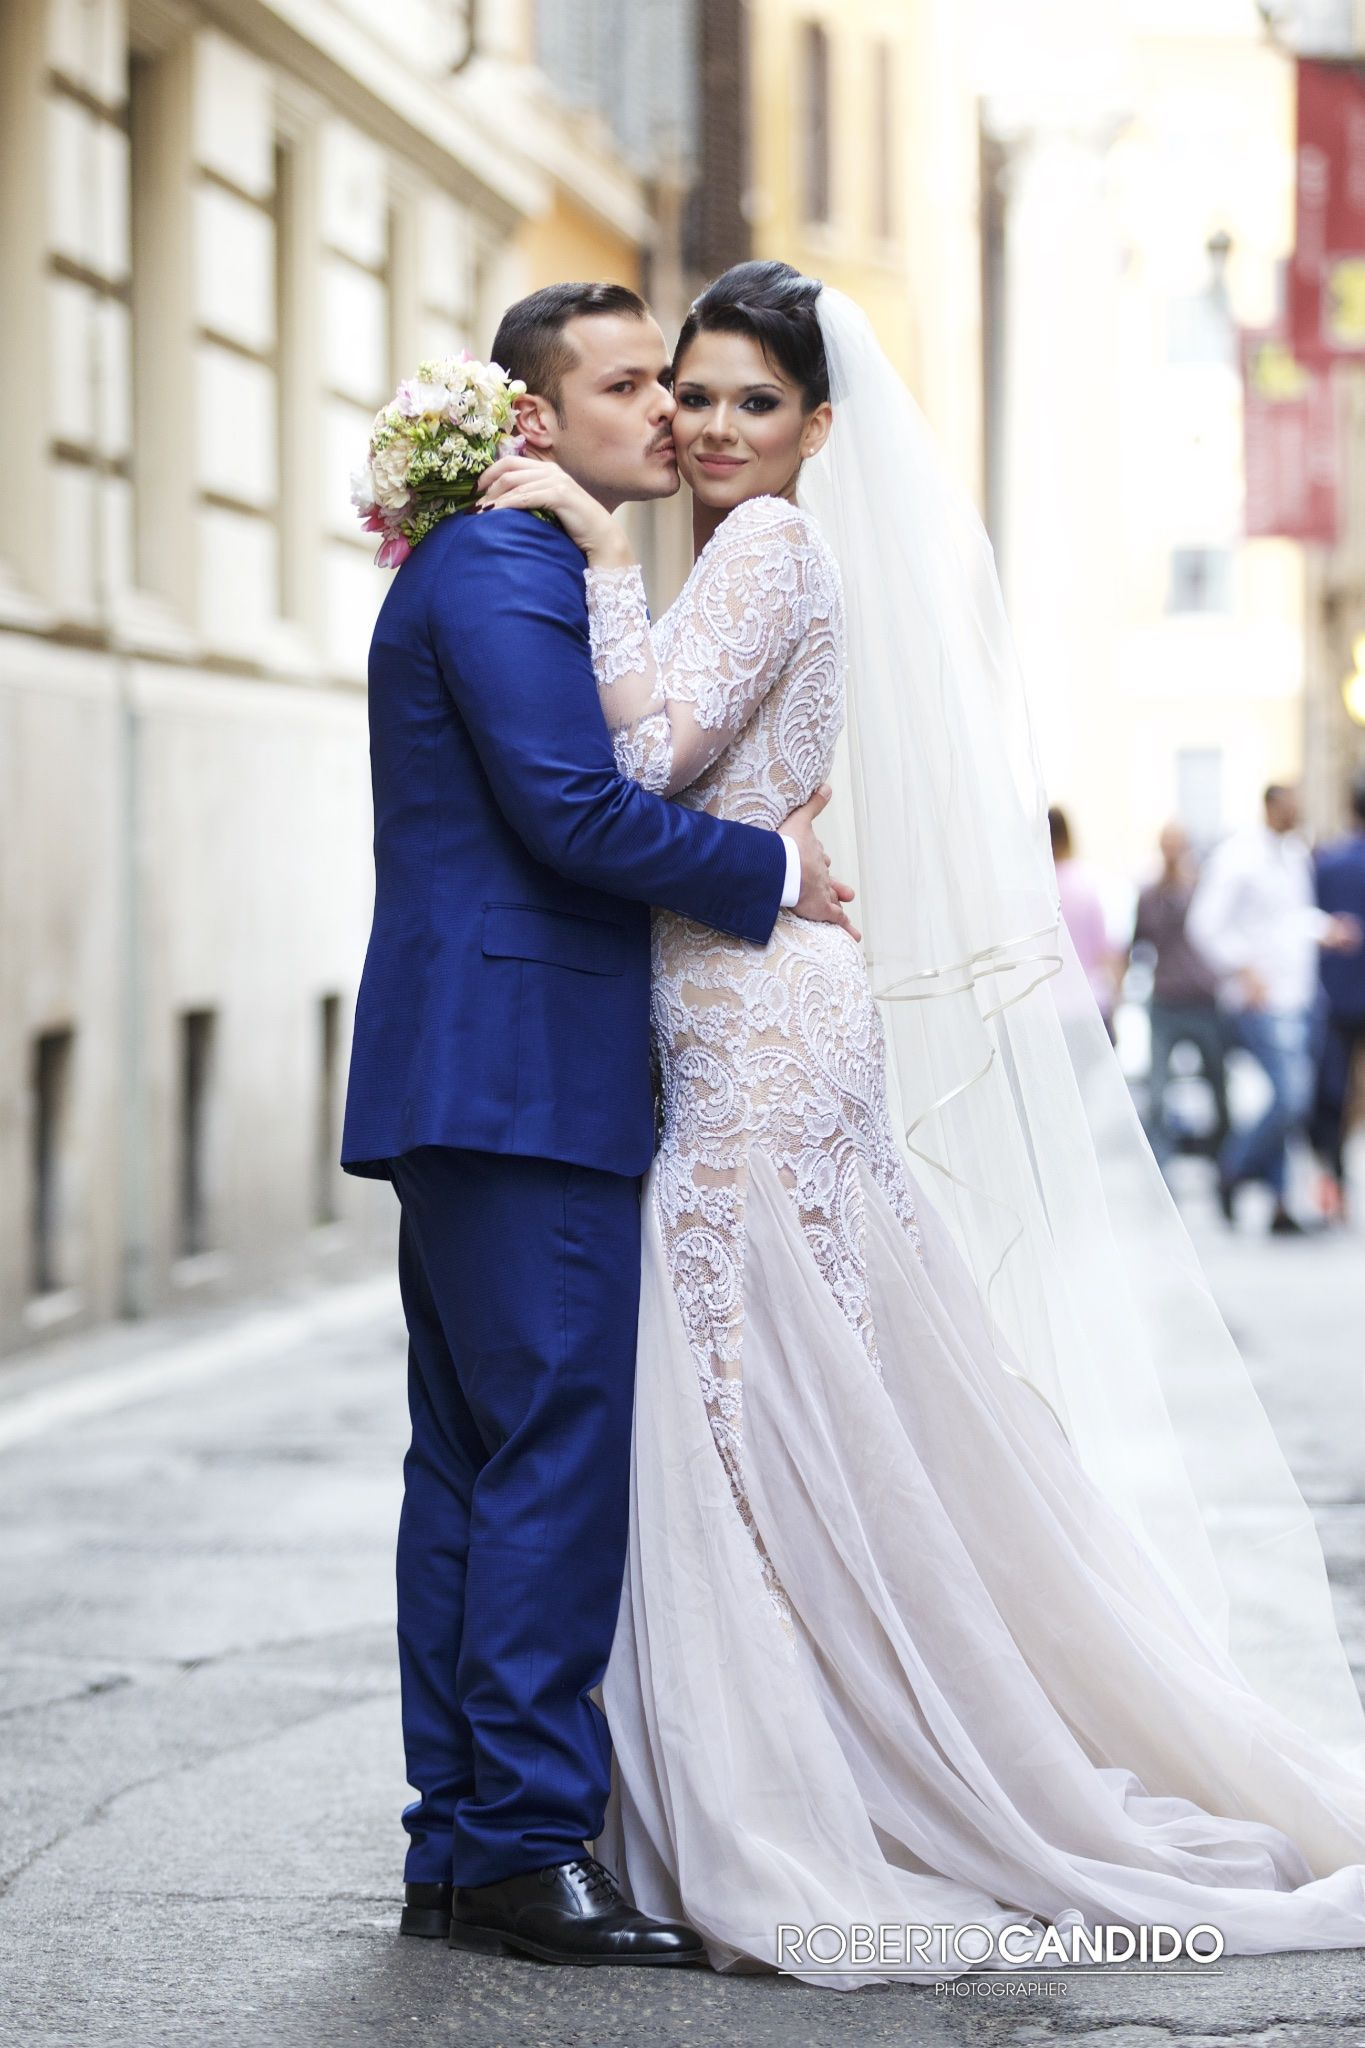 Getting married in Italy. Why? Food is excellent, old traditions are fascinating and locations are just incredible.